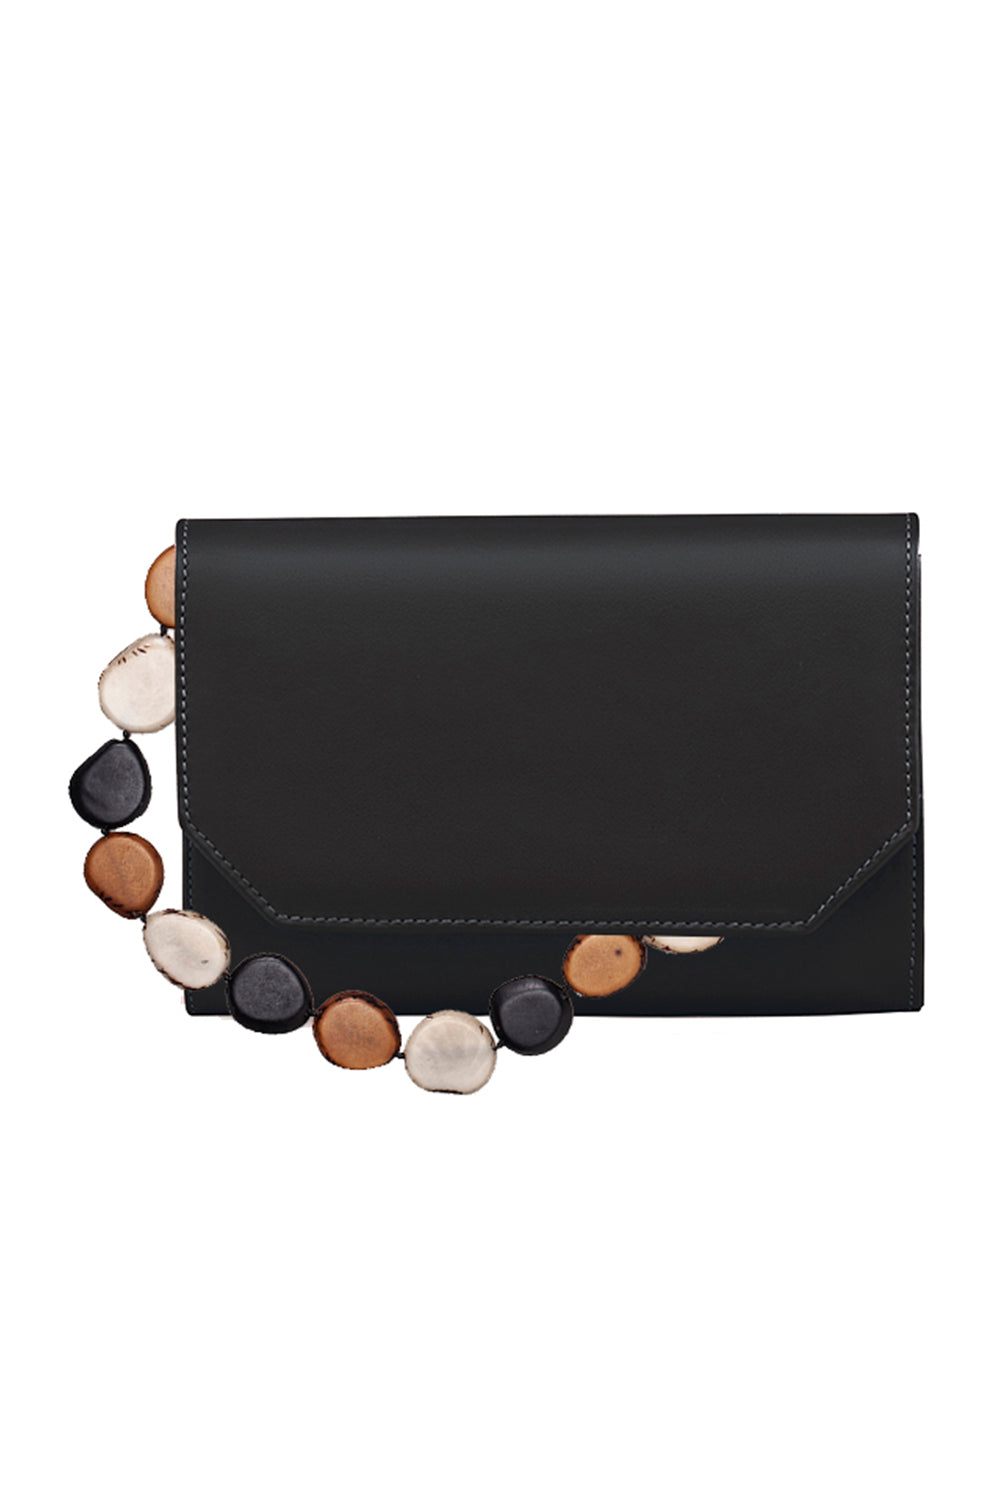 Xalma Tagua Bag in Black